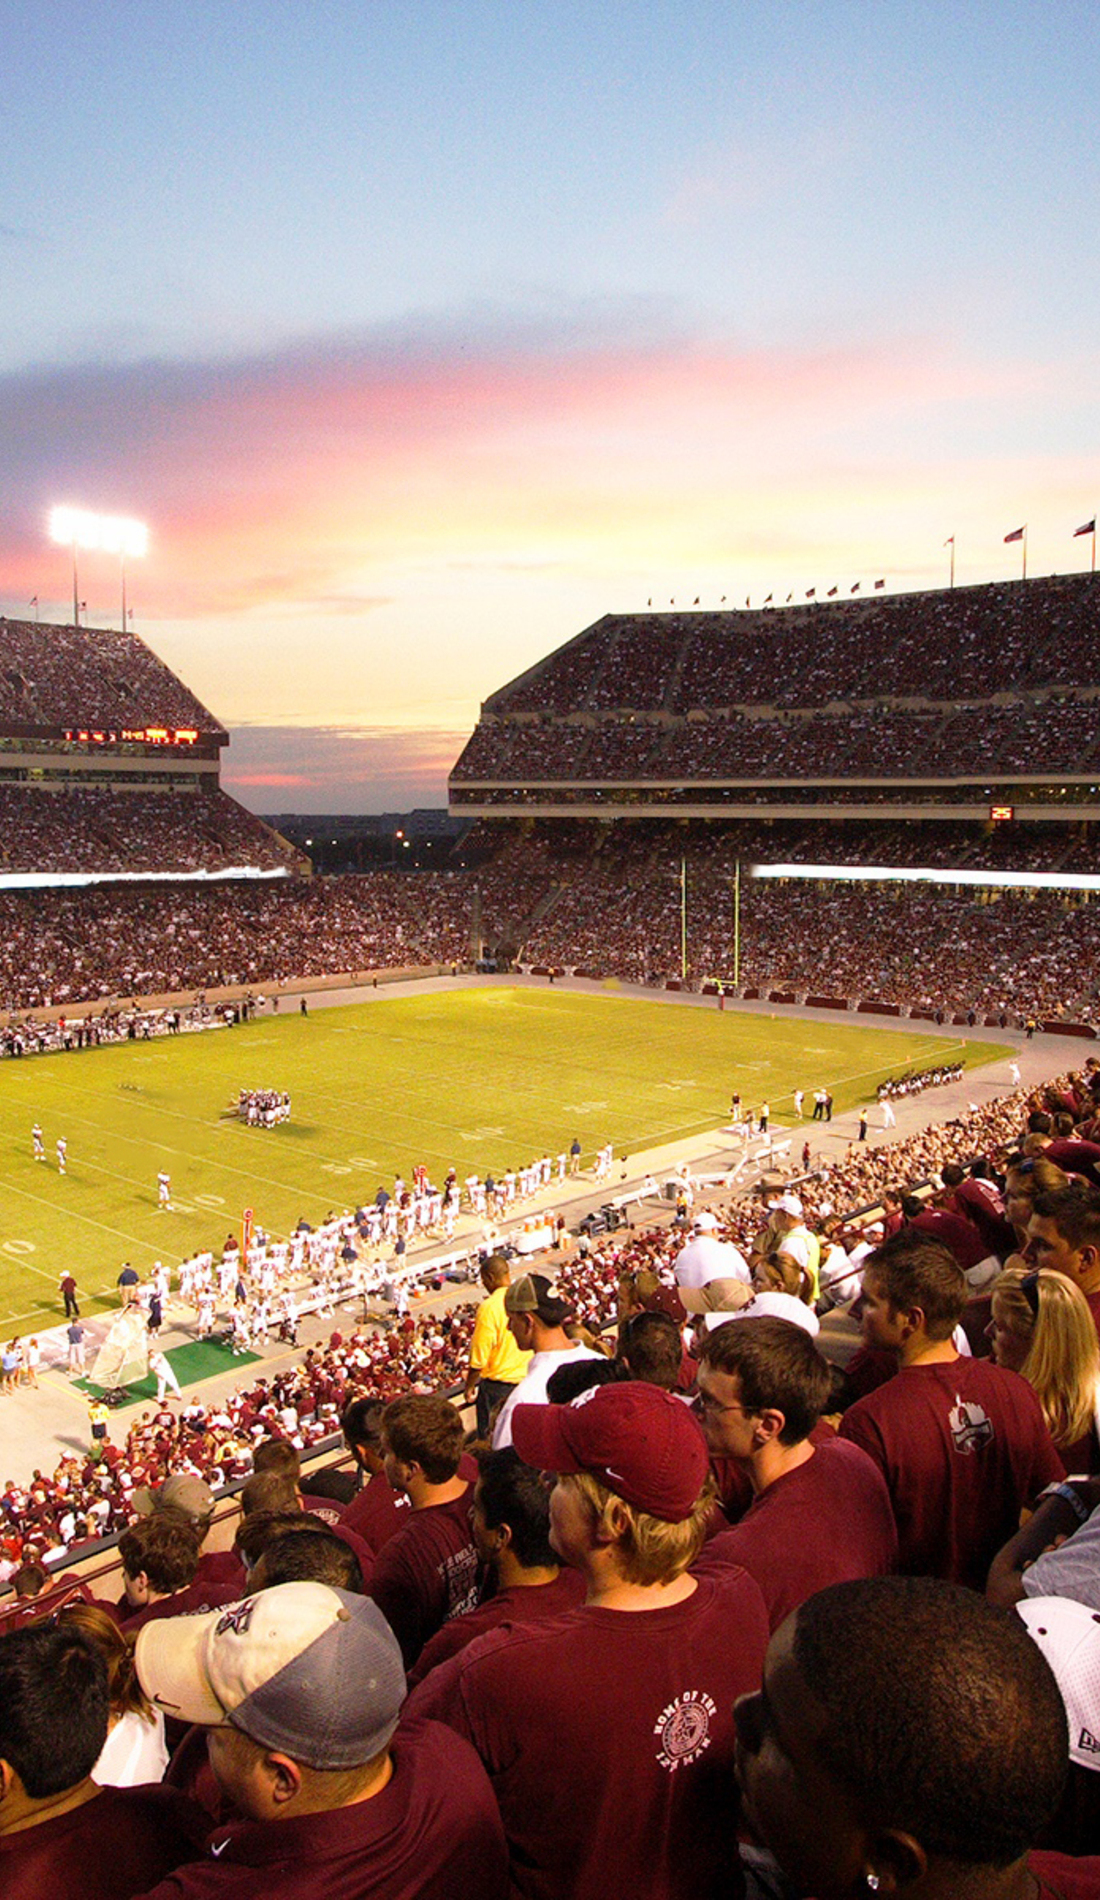 A Texas A&M Aggies Football live event